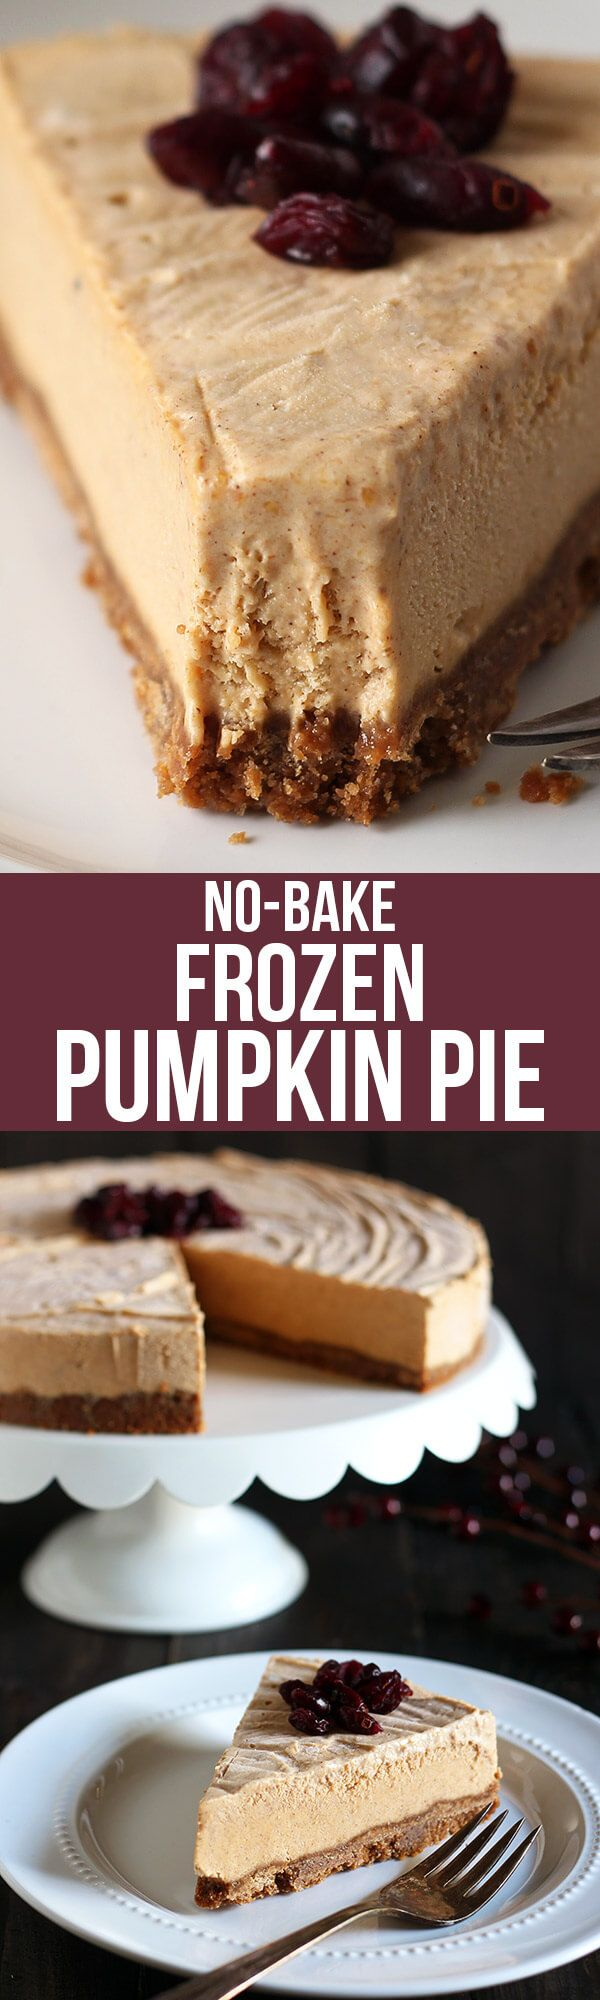 No-Bake Frozen Pumpkin Pie is one of the easiest pies ever!!!